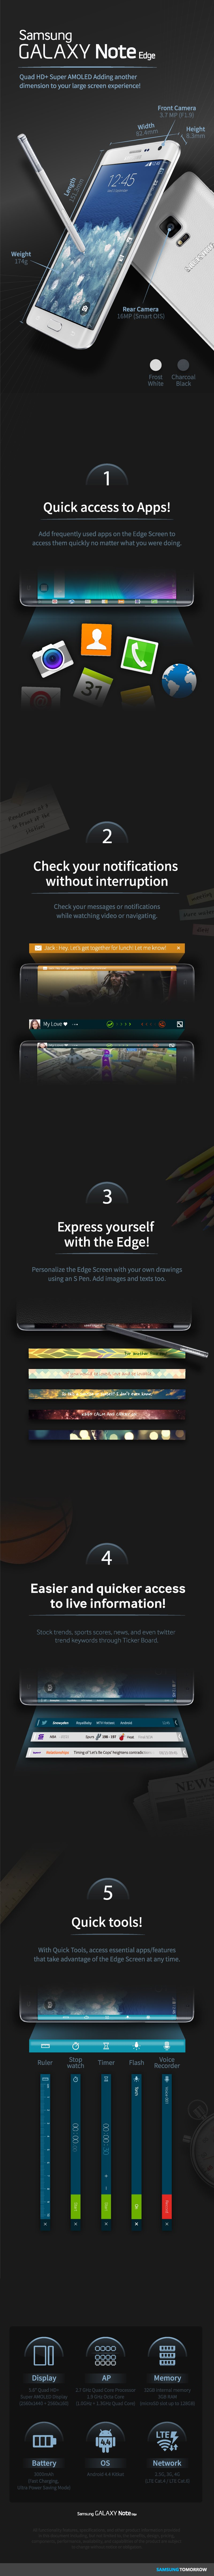 Galaxy Note Edge Infografik